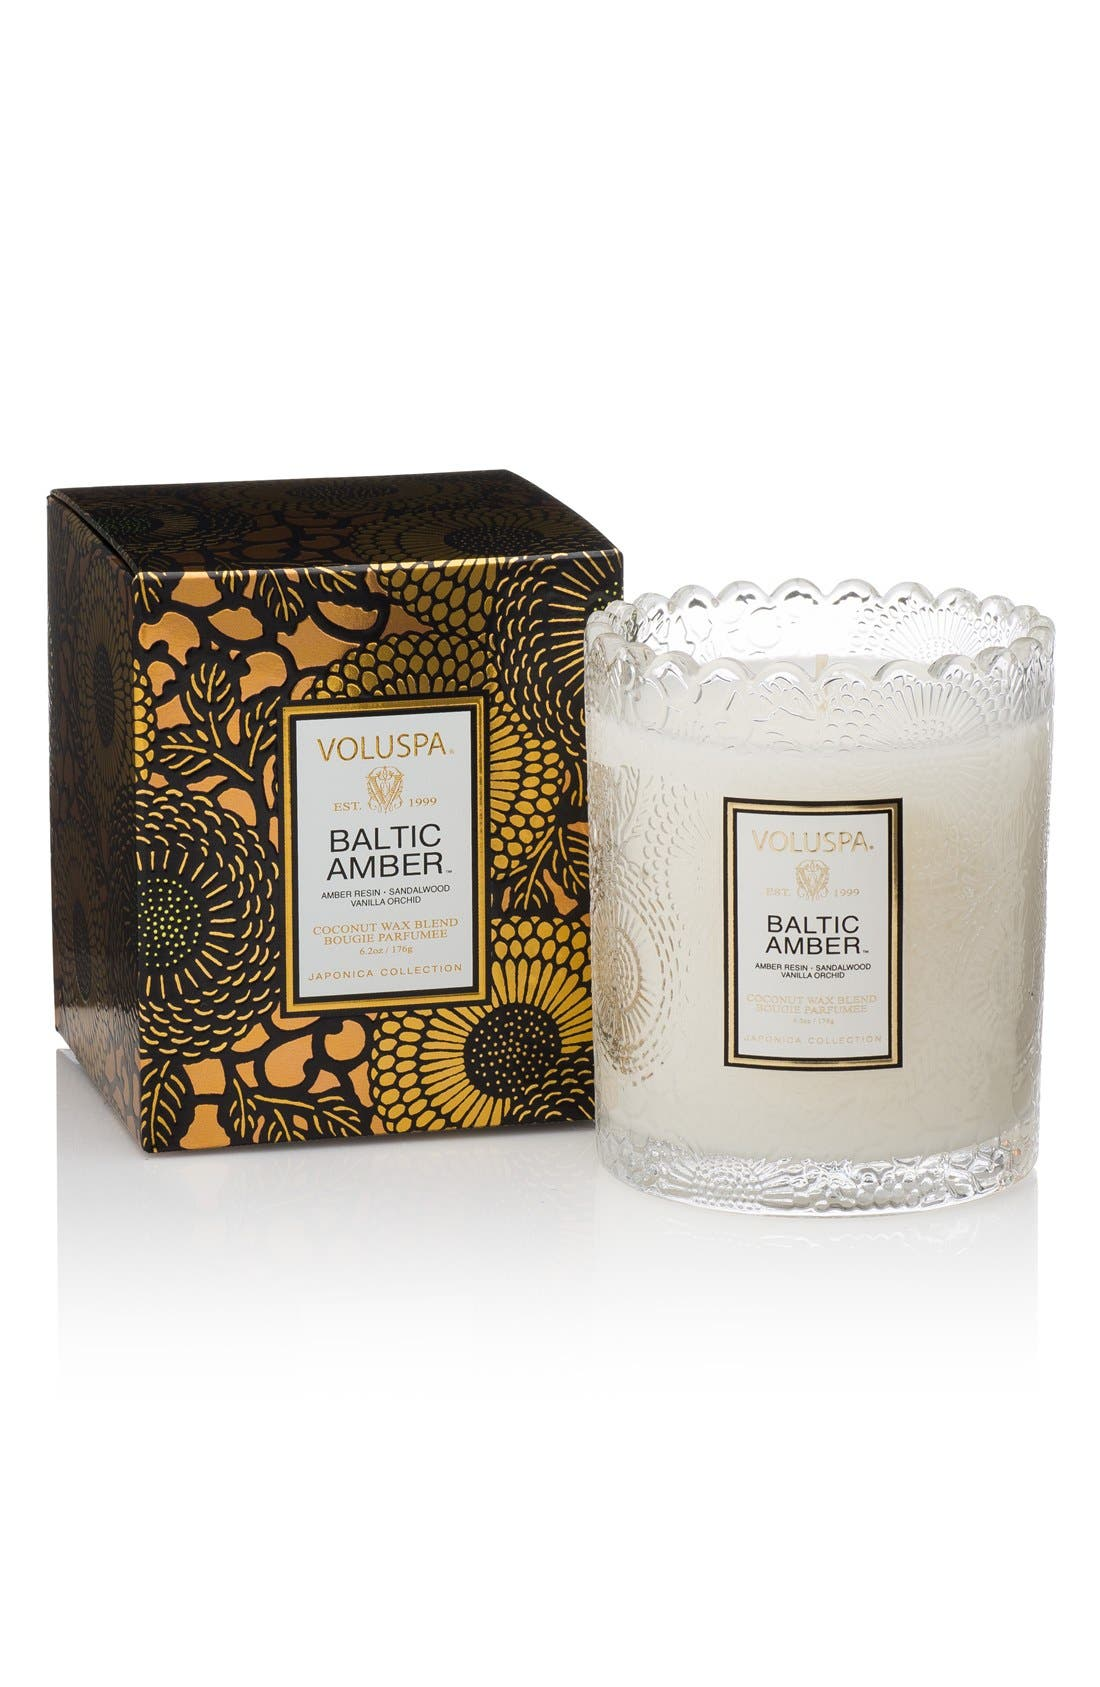 Japonica Baltic Amber Scalloped Edge Embossed Glass Candle,                             Main thumbnail 1, color,                             NO COLOR